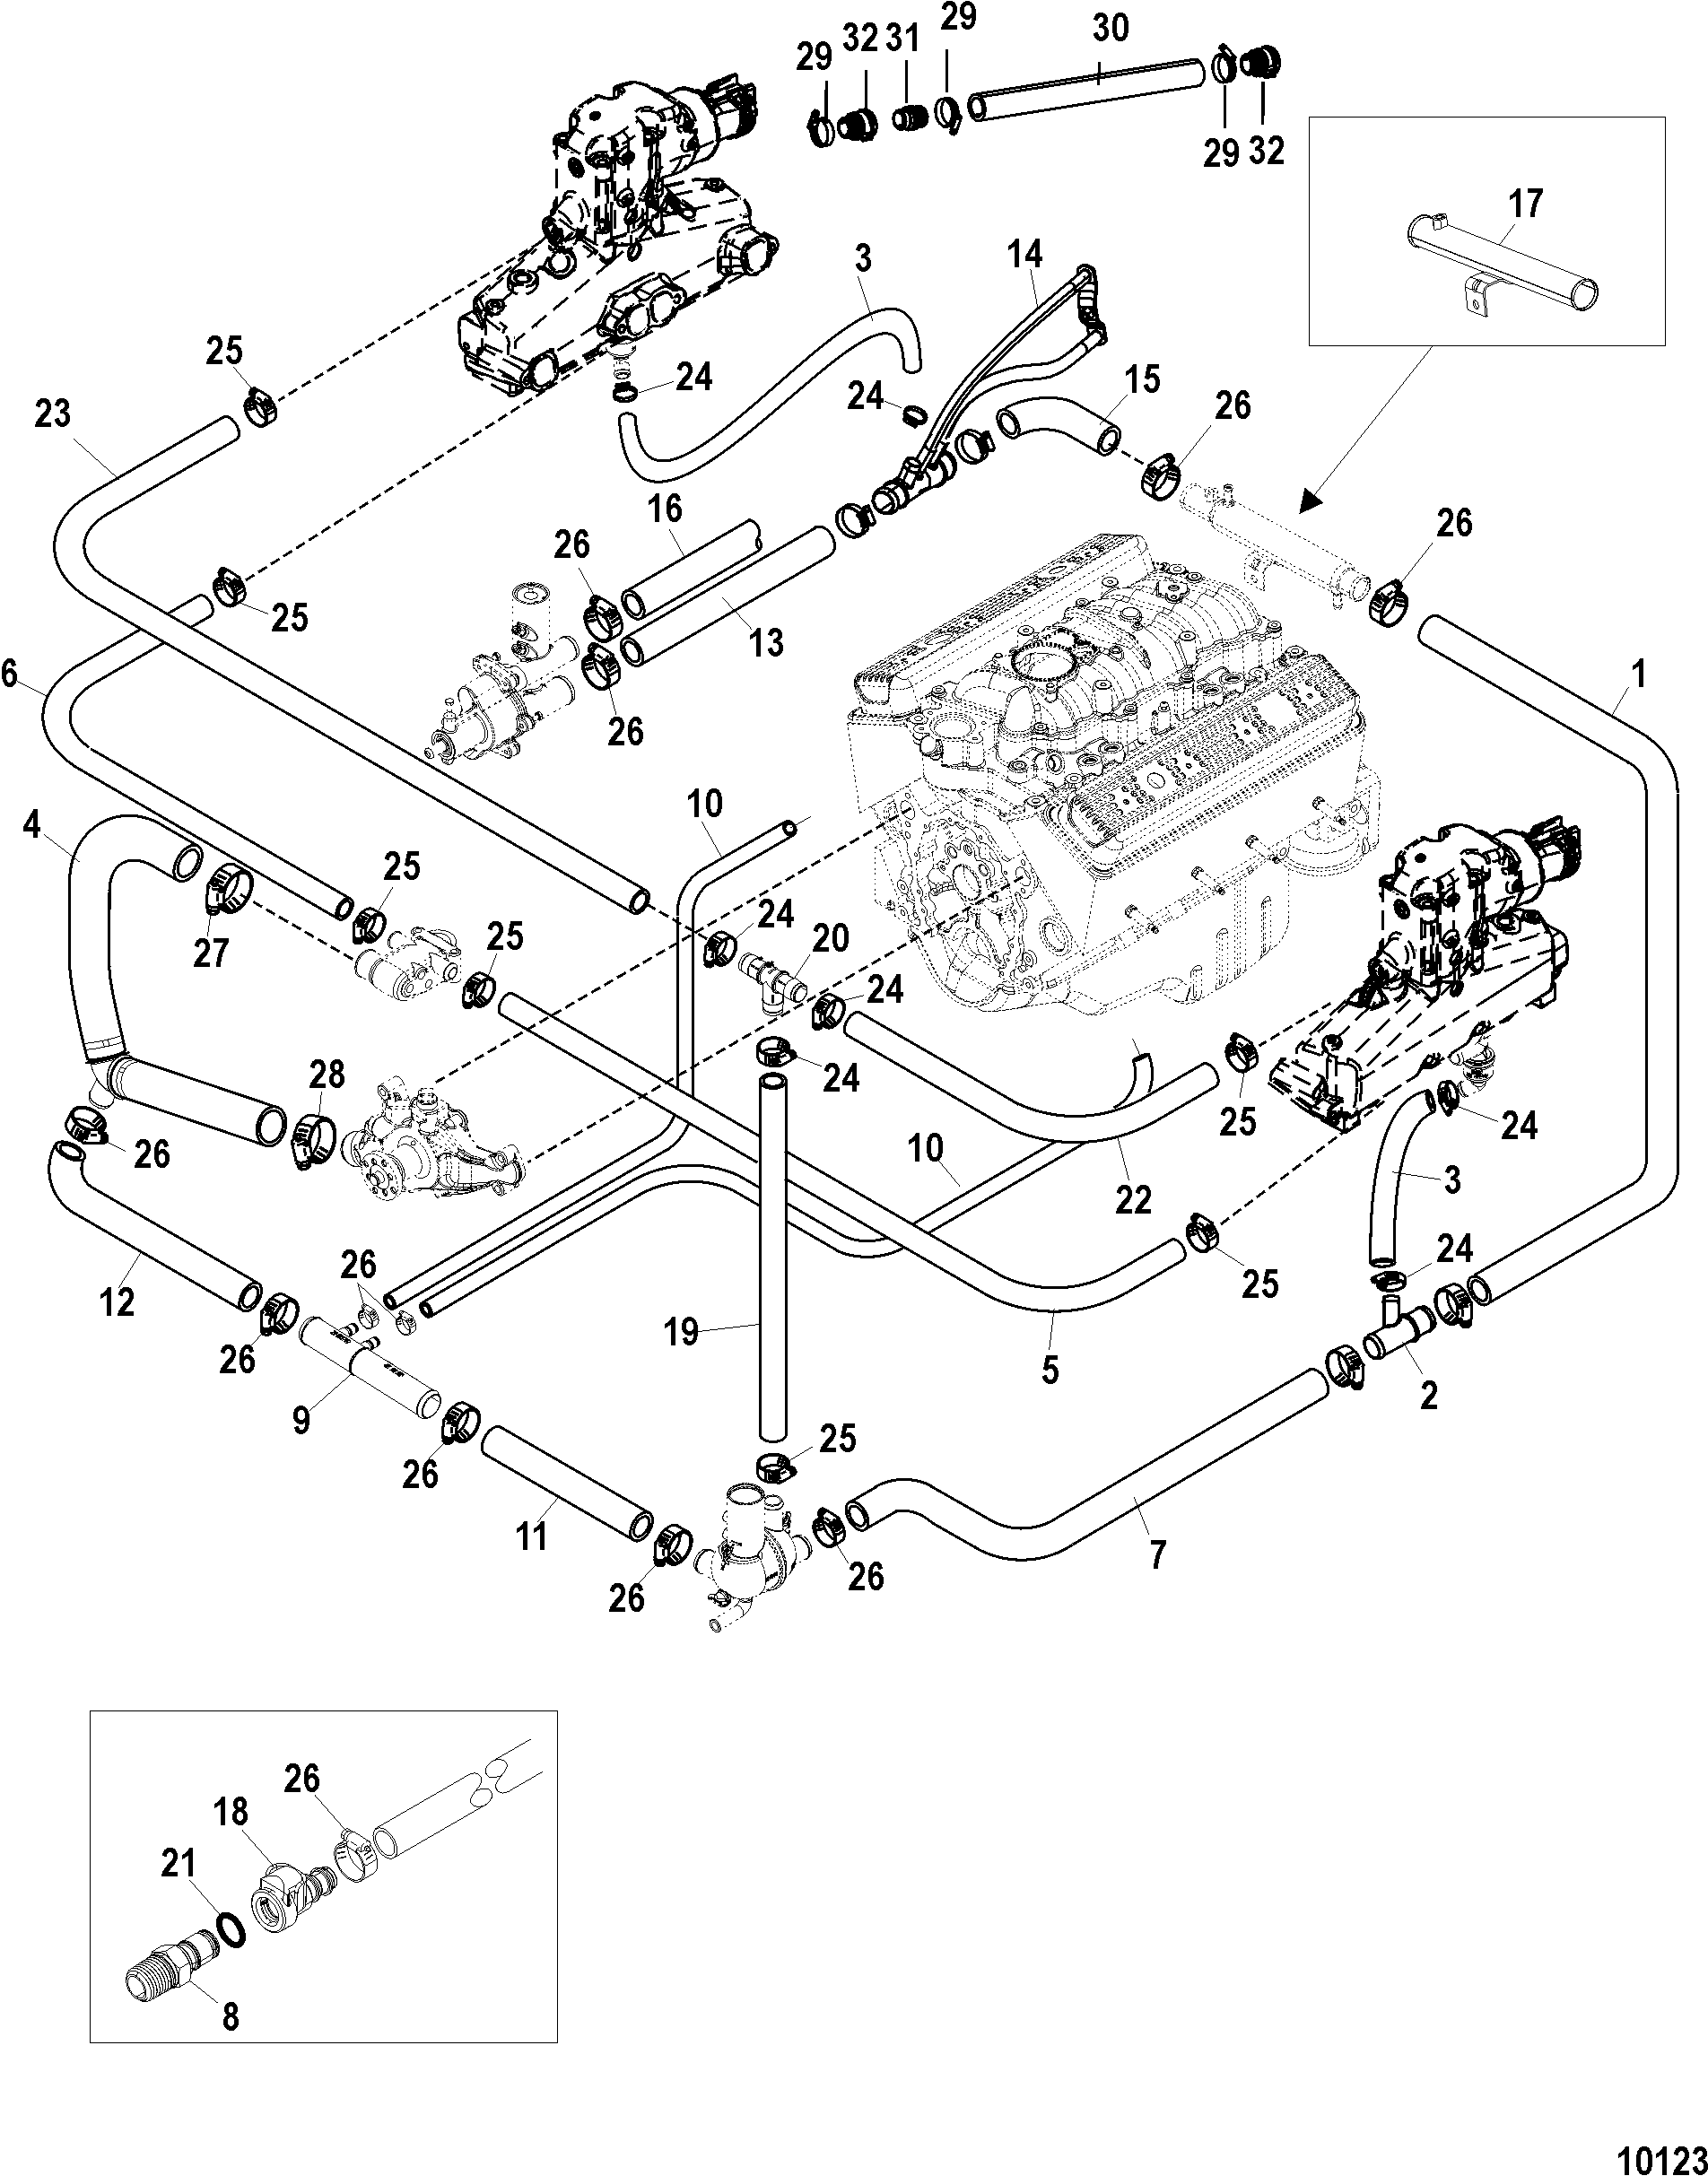 a cdi ignition wiring diagram for 185